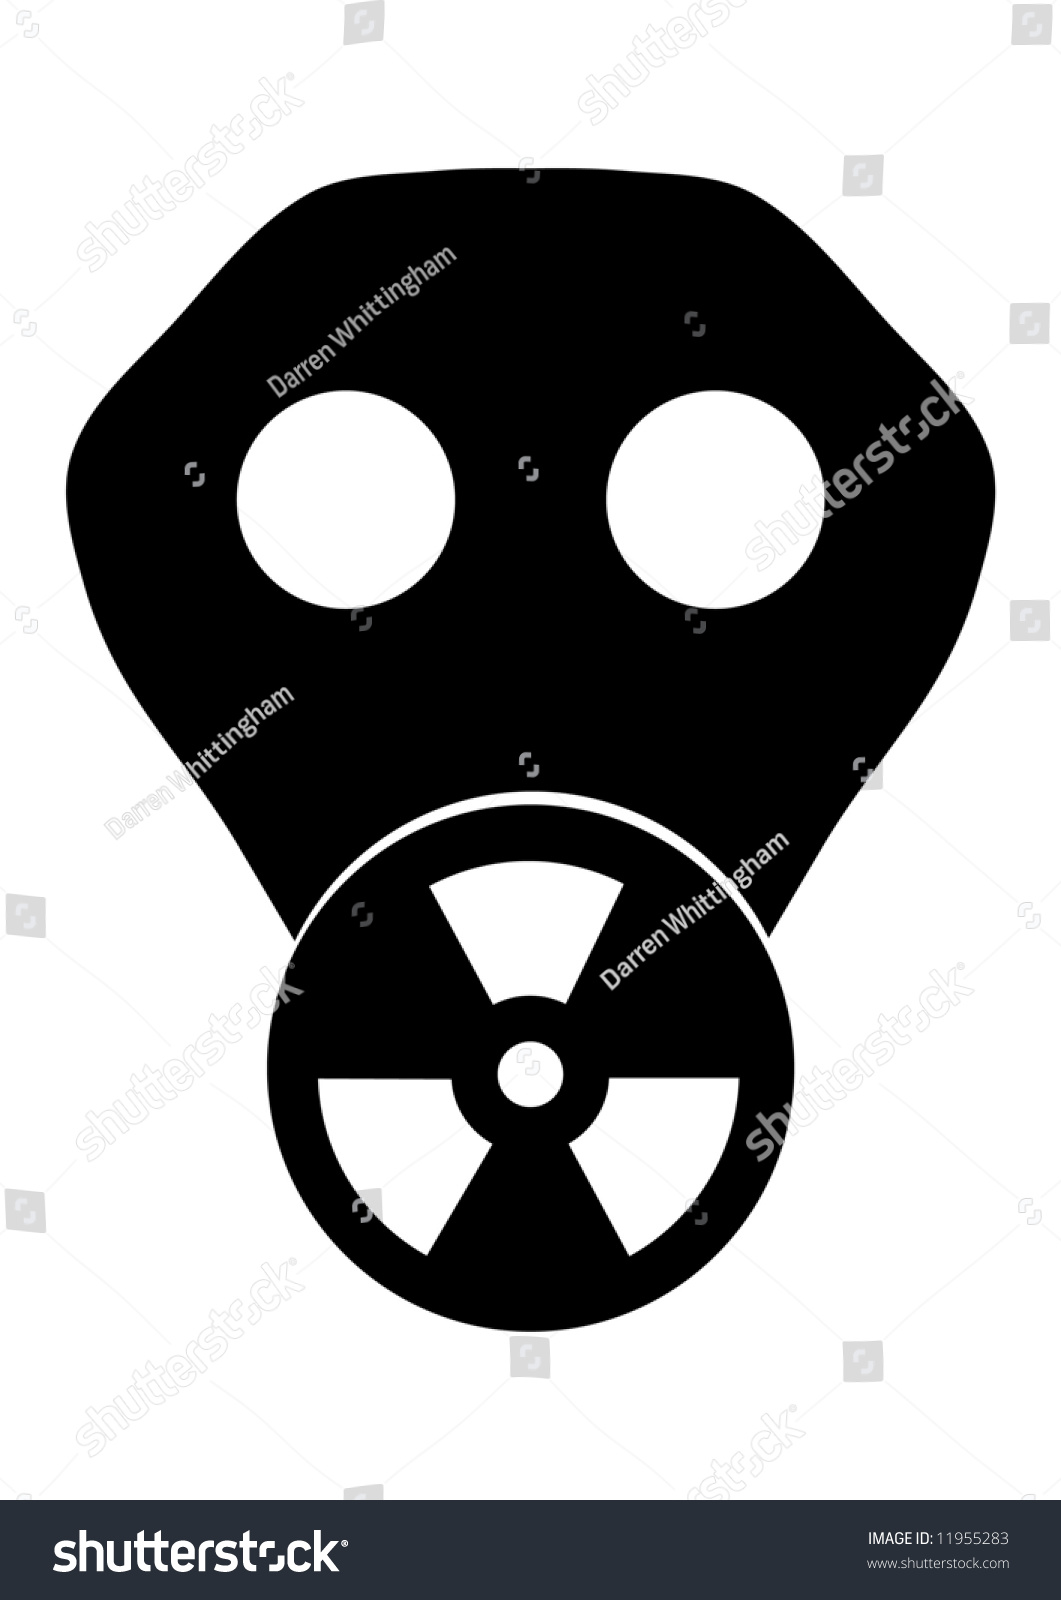 Toxic Symbol Black And White Black White Illustrati...